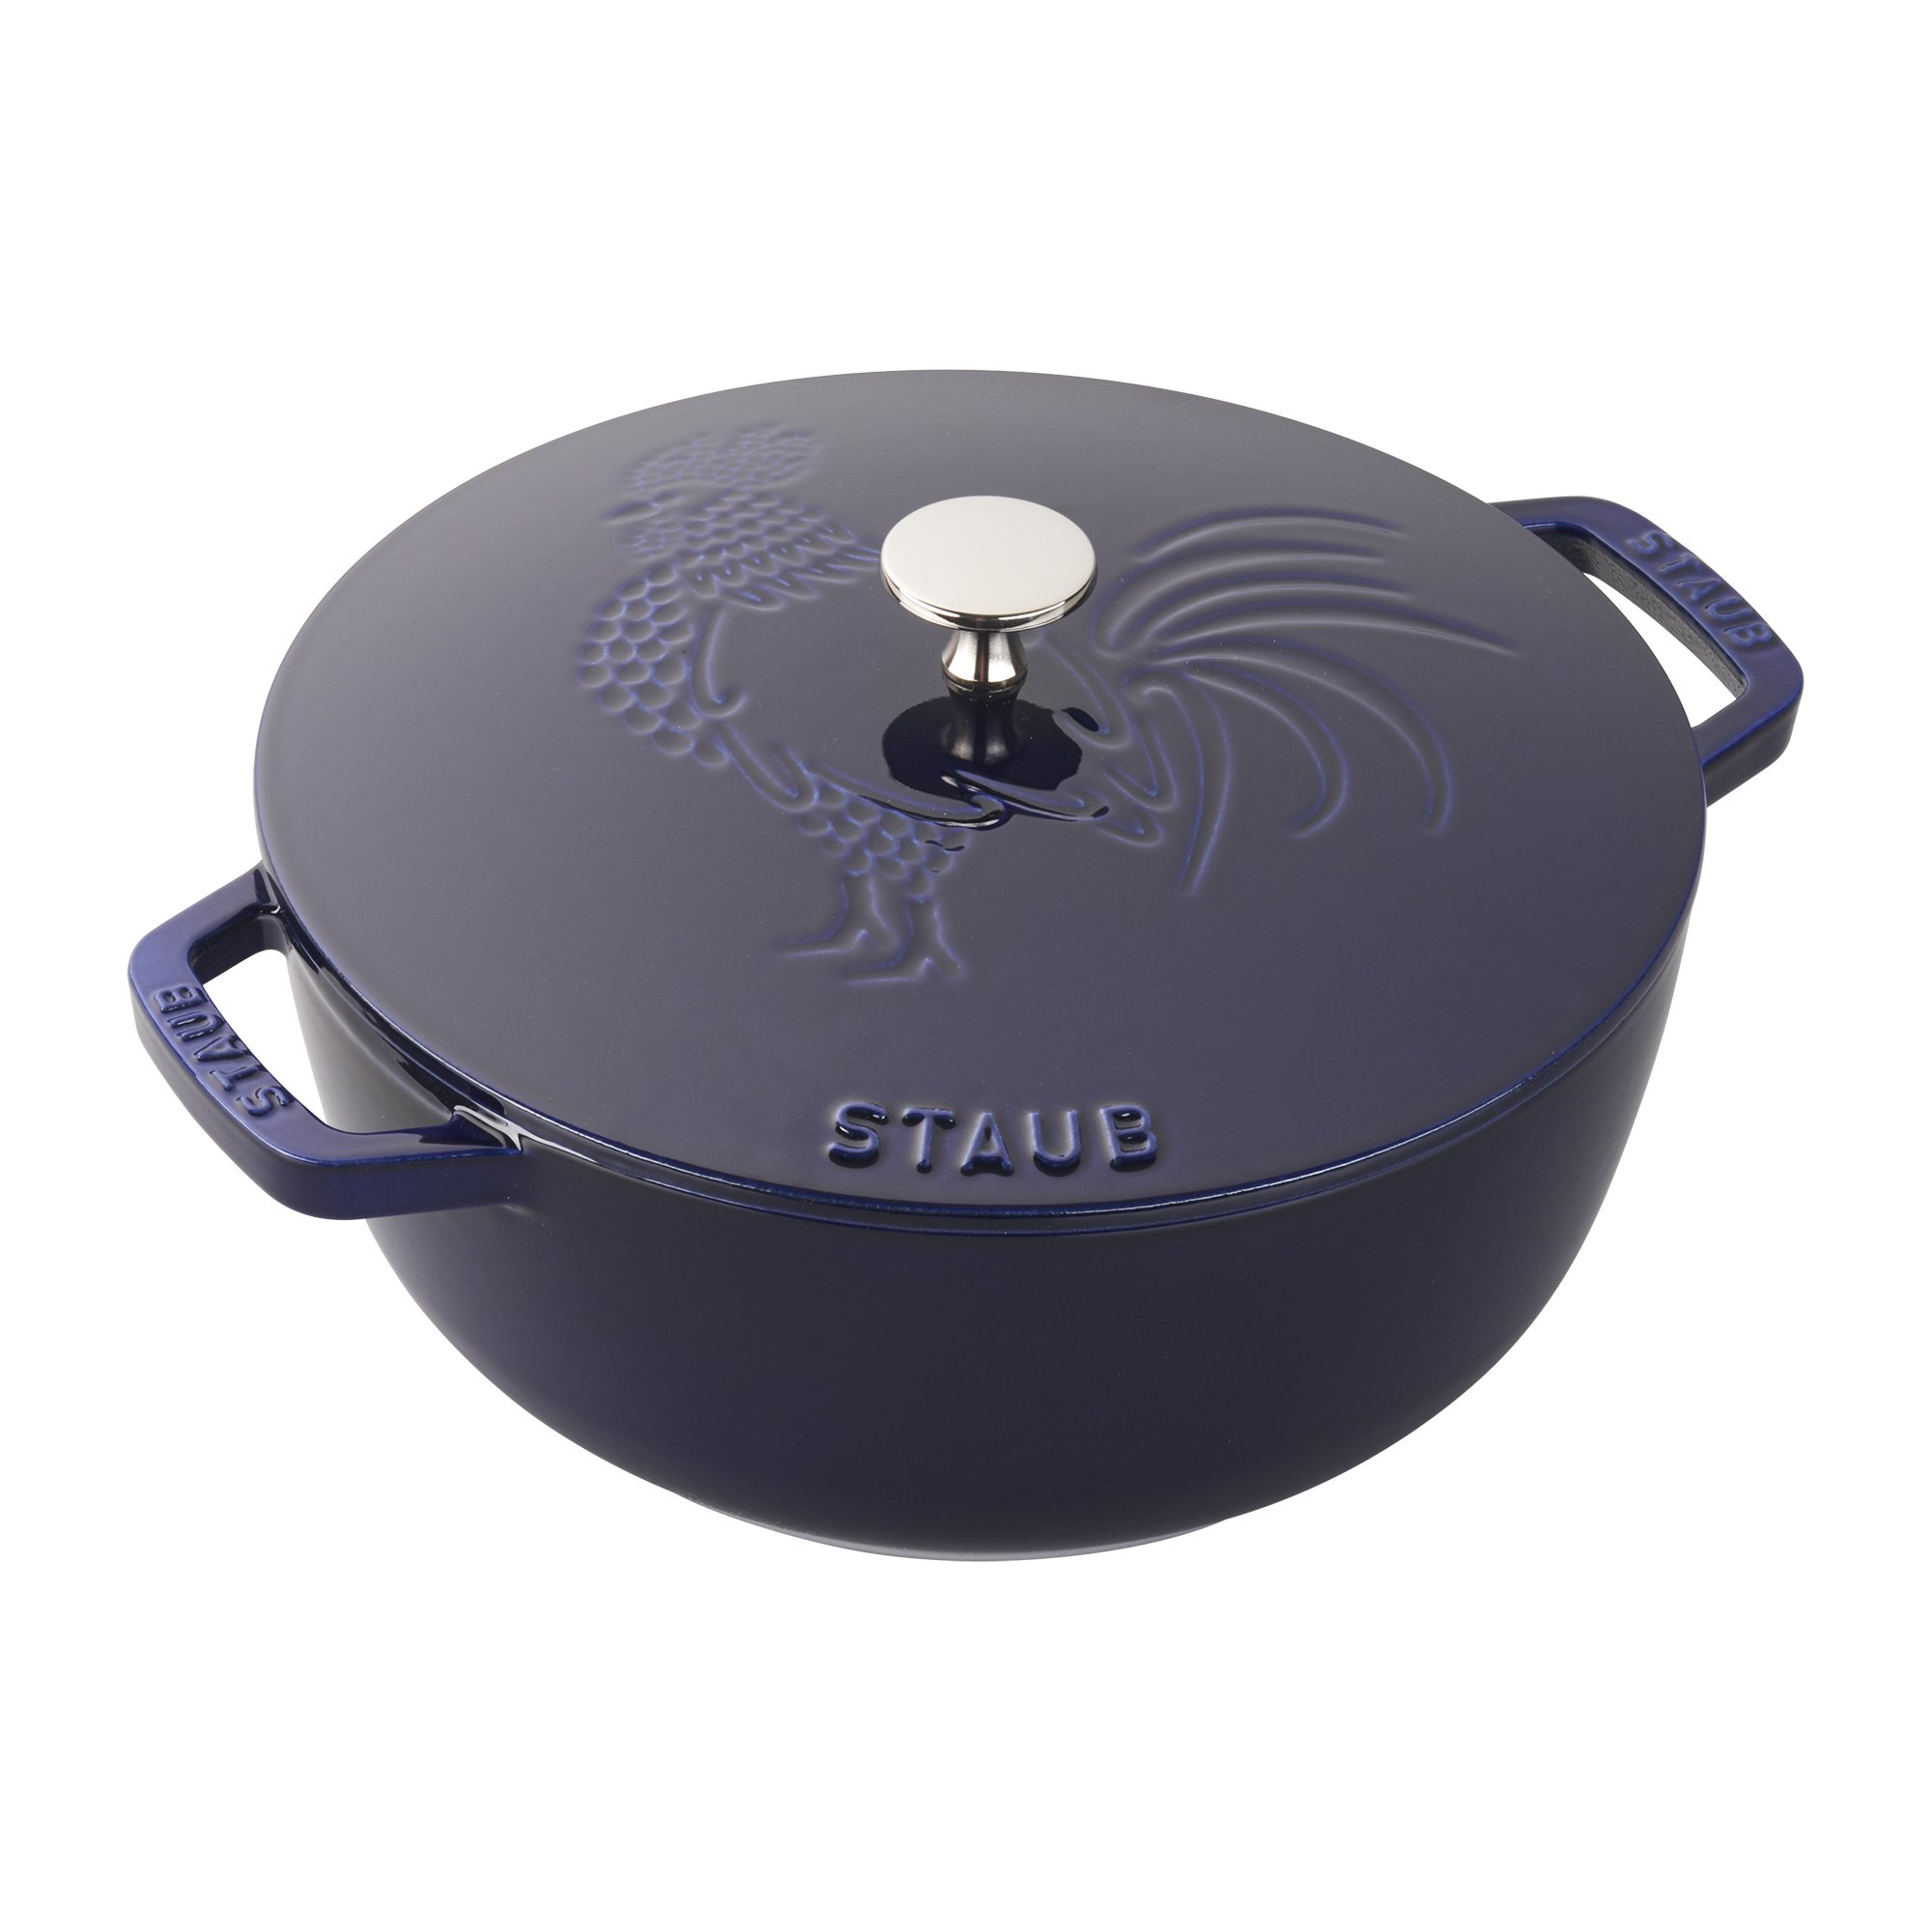 Staub Cast Iron 3.75-qt Essential French Oven Rooster - Dark Blue